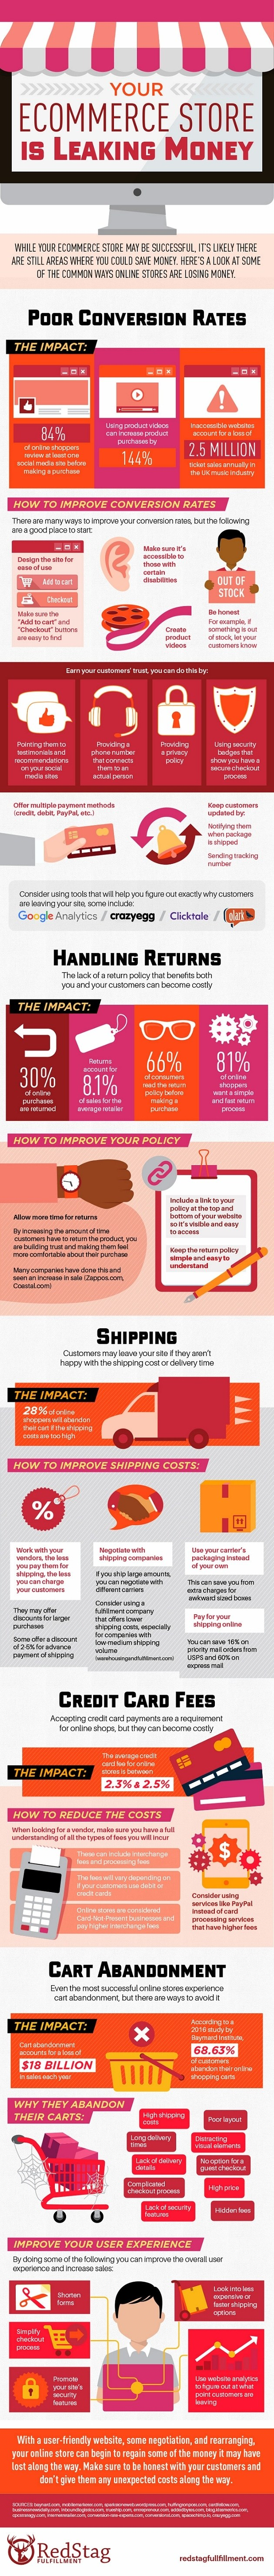 160716-your-ecommerce-store-is-leaking-money-infographic